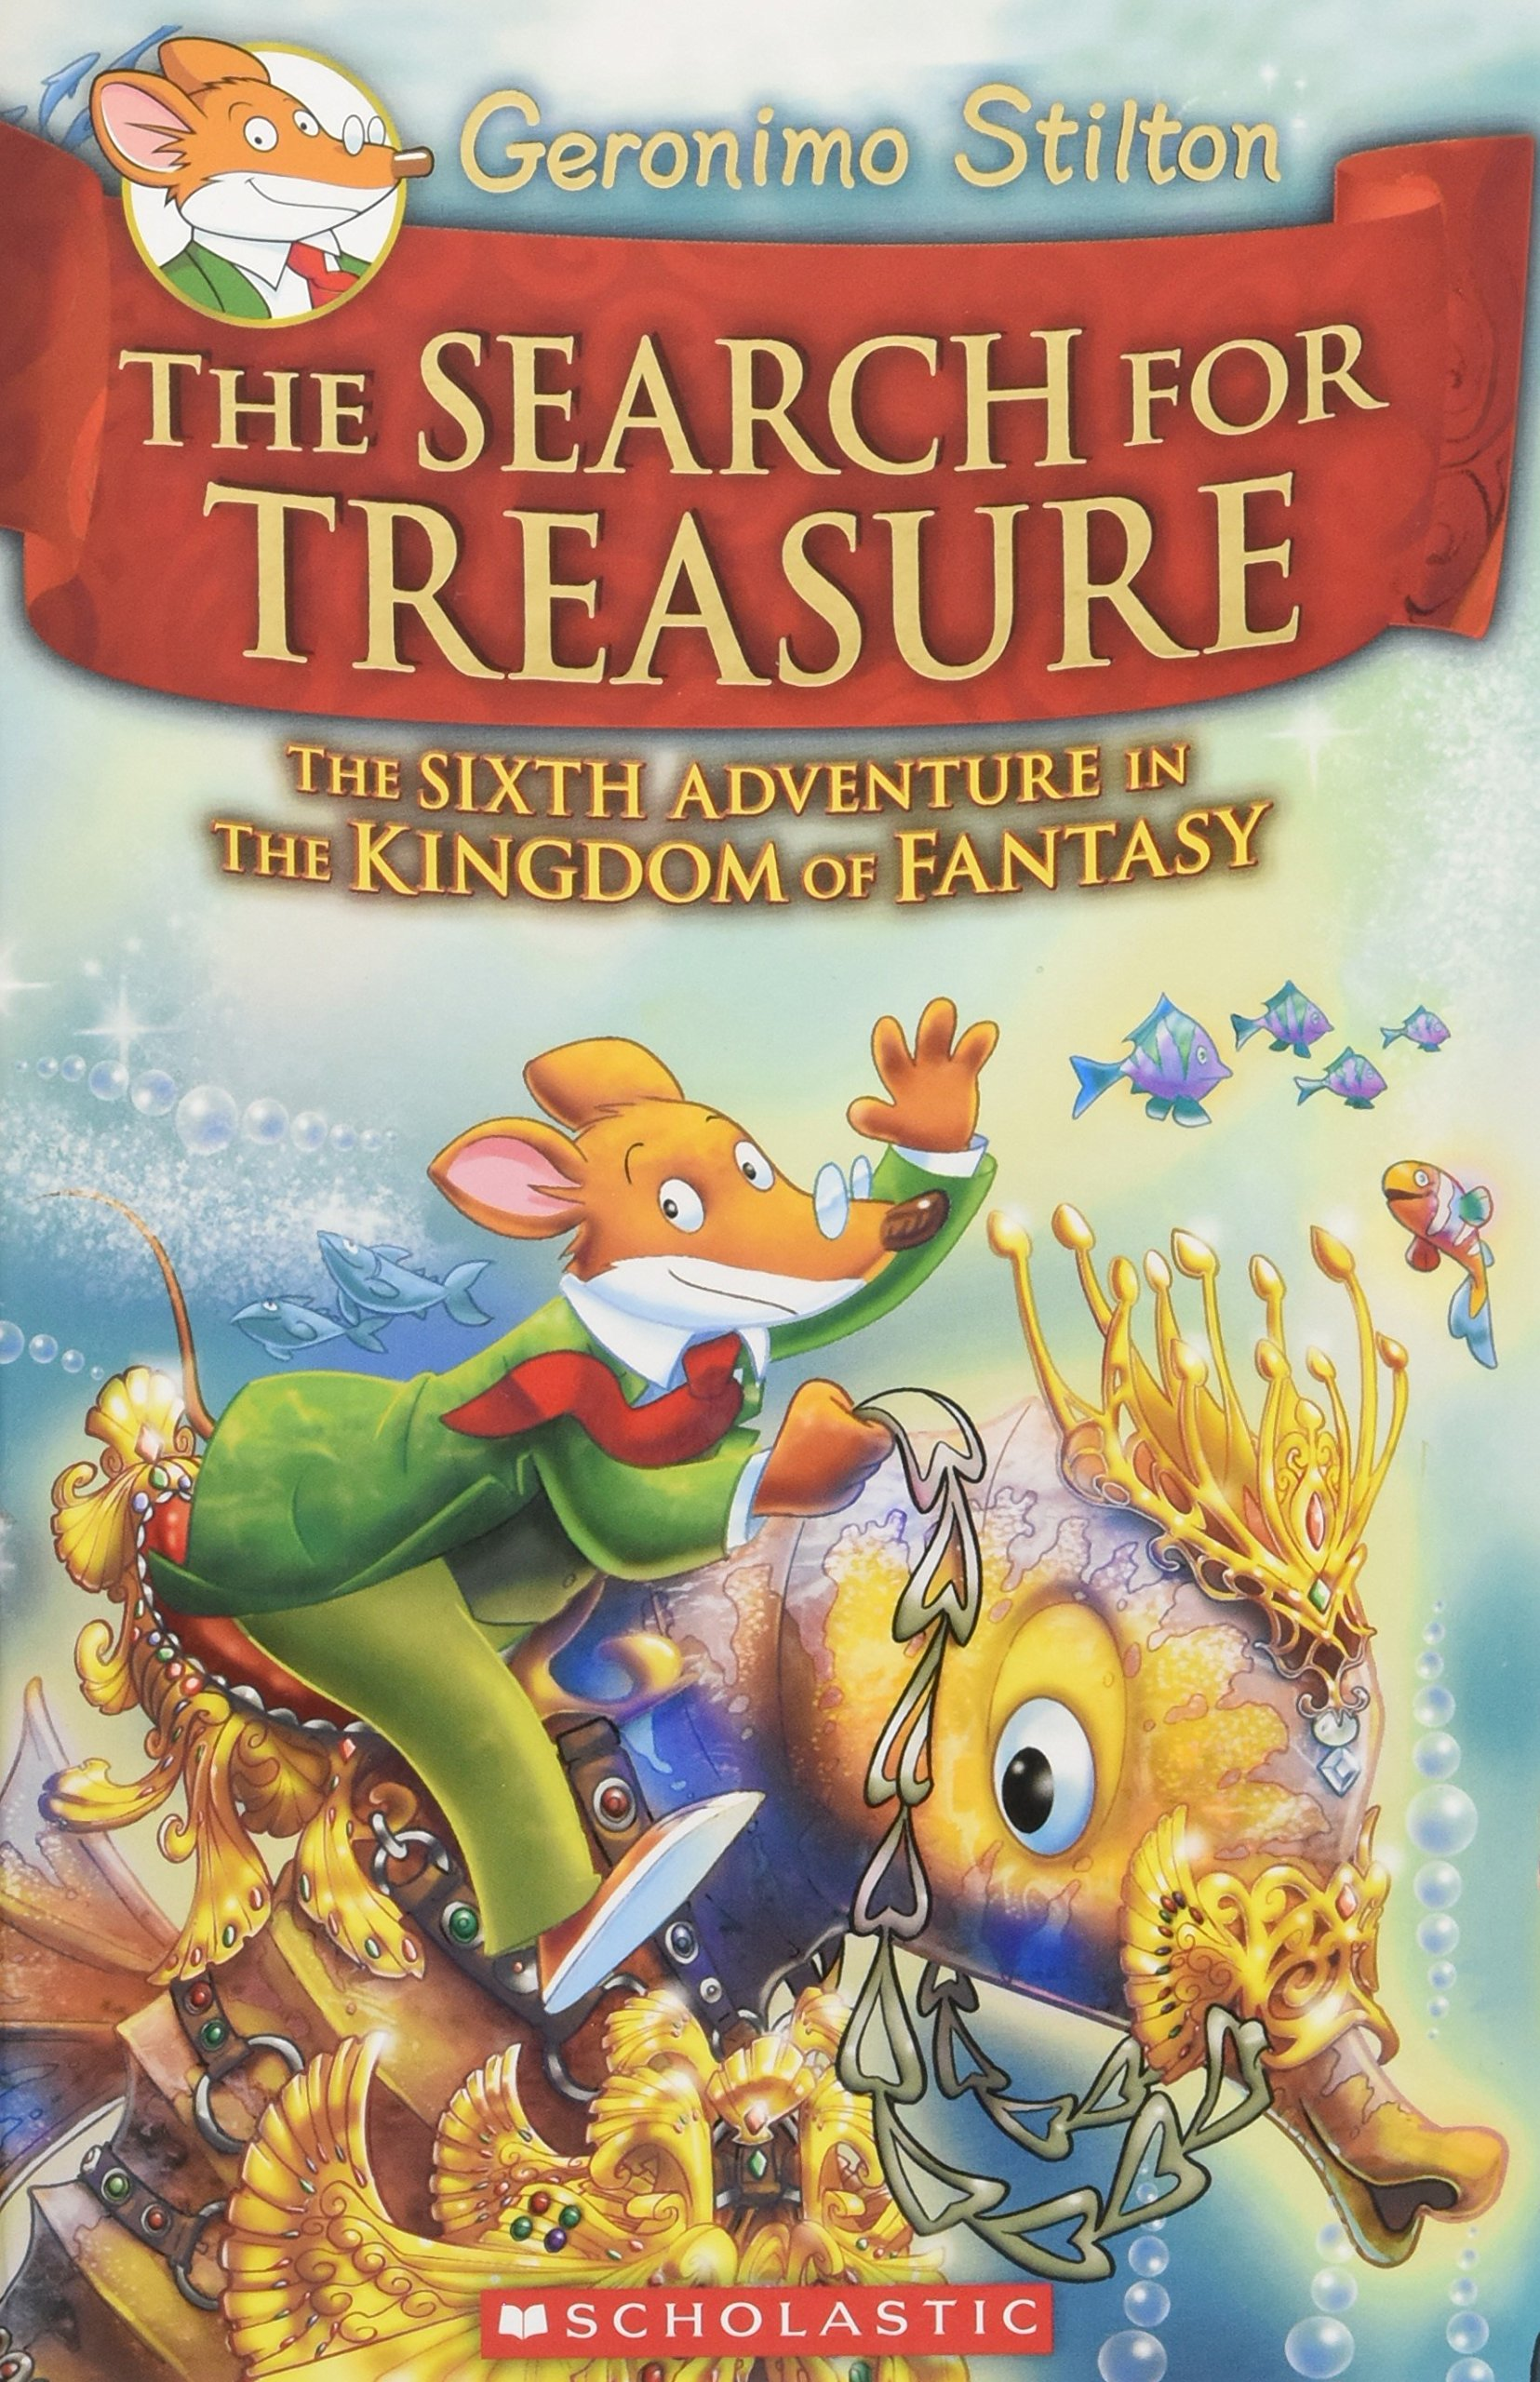 geronimo-stilton-and-the-kingdom-of-fantasy-6-the-search-for-treasure-geronimo-stilton-the-kingdom-of-fantasy